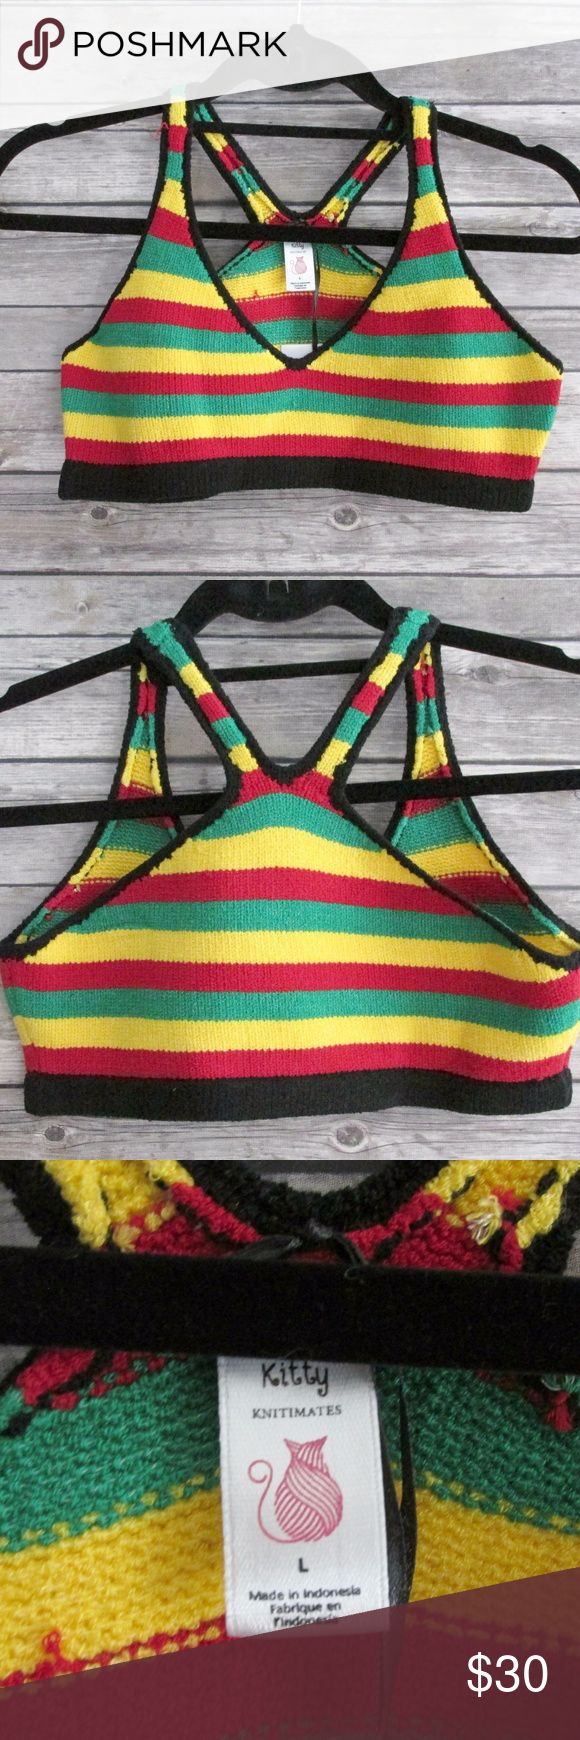 Dolls Kill Jamaica Rasta Knit Sweater Bralette Knit bralette with colorful stripes and black contrast border. The bralette is very soft. It feels and looks almost like Terry Cloth in my opinion. Great for festivals.  Condition: NWT Type: Bra Style: Bralette Size: L Brand: Knitty Kitty for Dolls Kill Color: Black, Green, Yellow, Red Materials: 85% Acrylic, 10% Nylon, 5% Spandex  DD0.8:201711110734:5:78K Dolls Kill Intimates & Sleepwear Bras